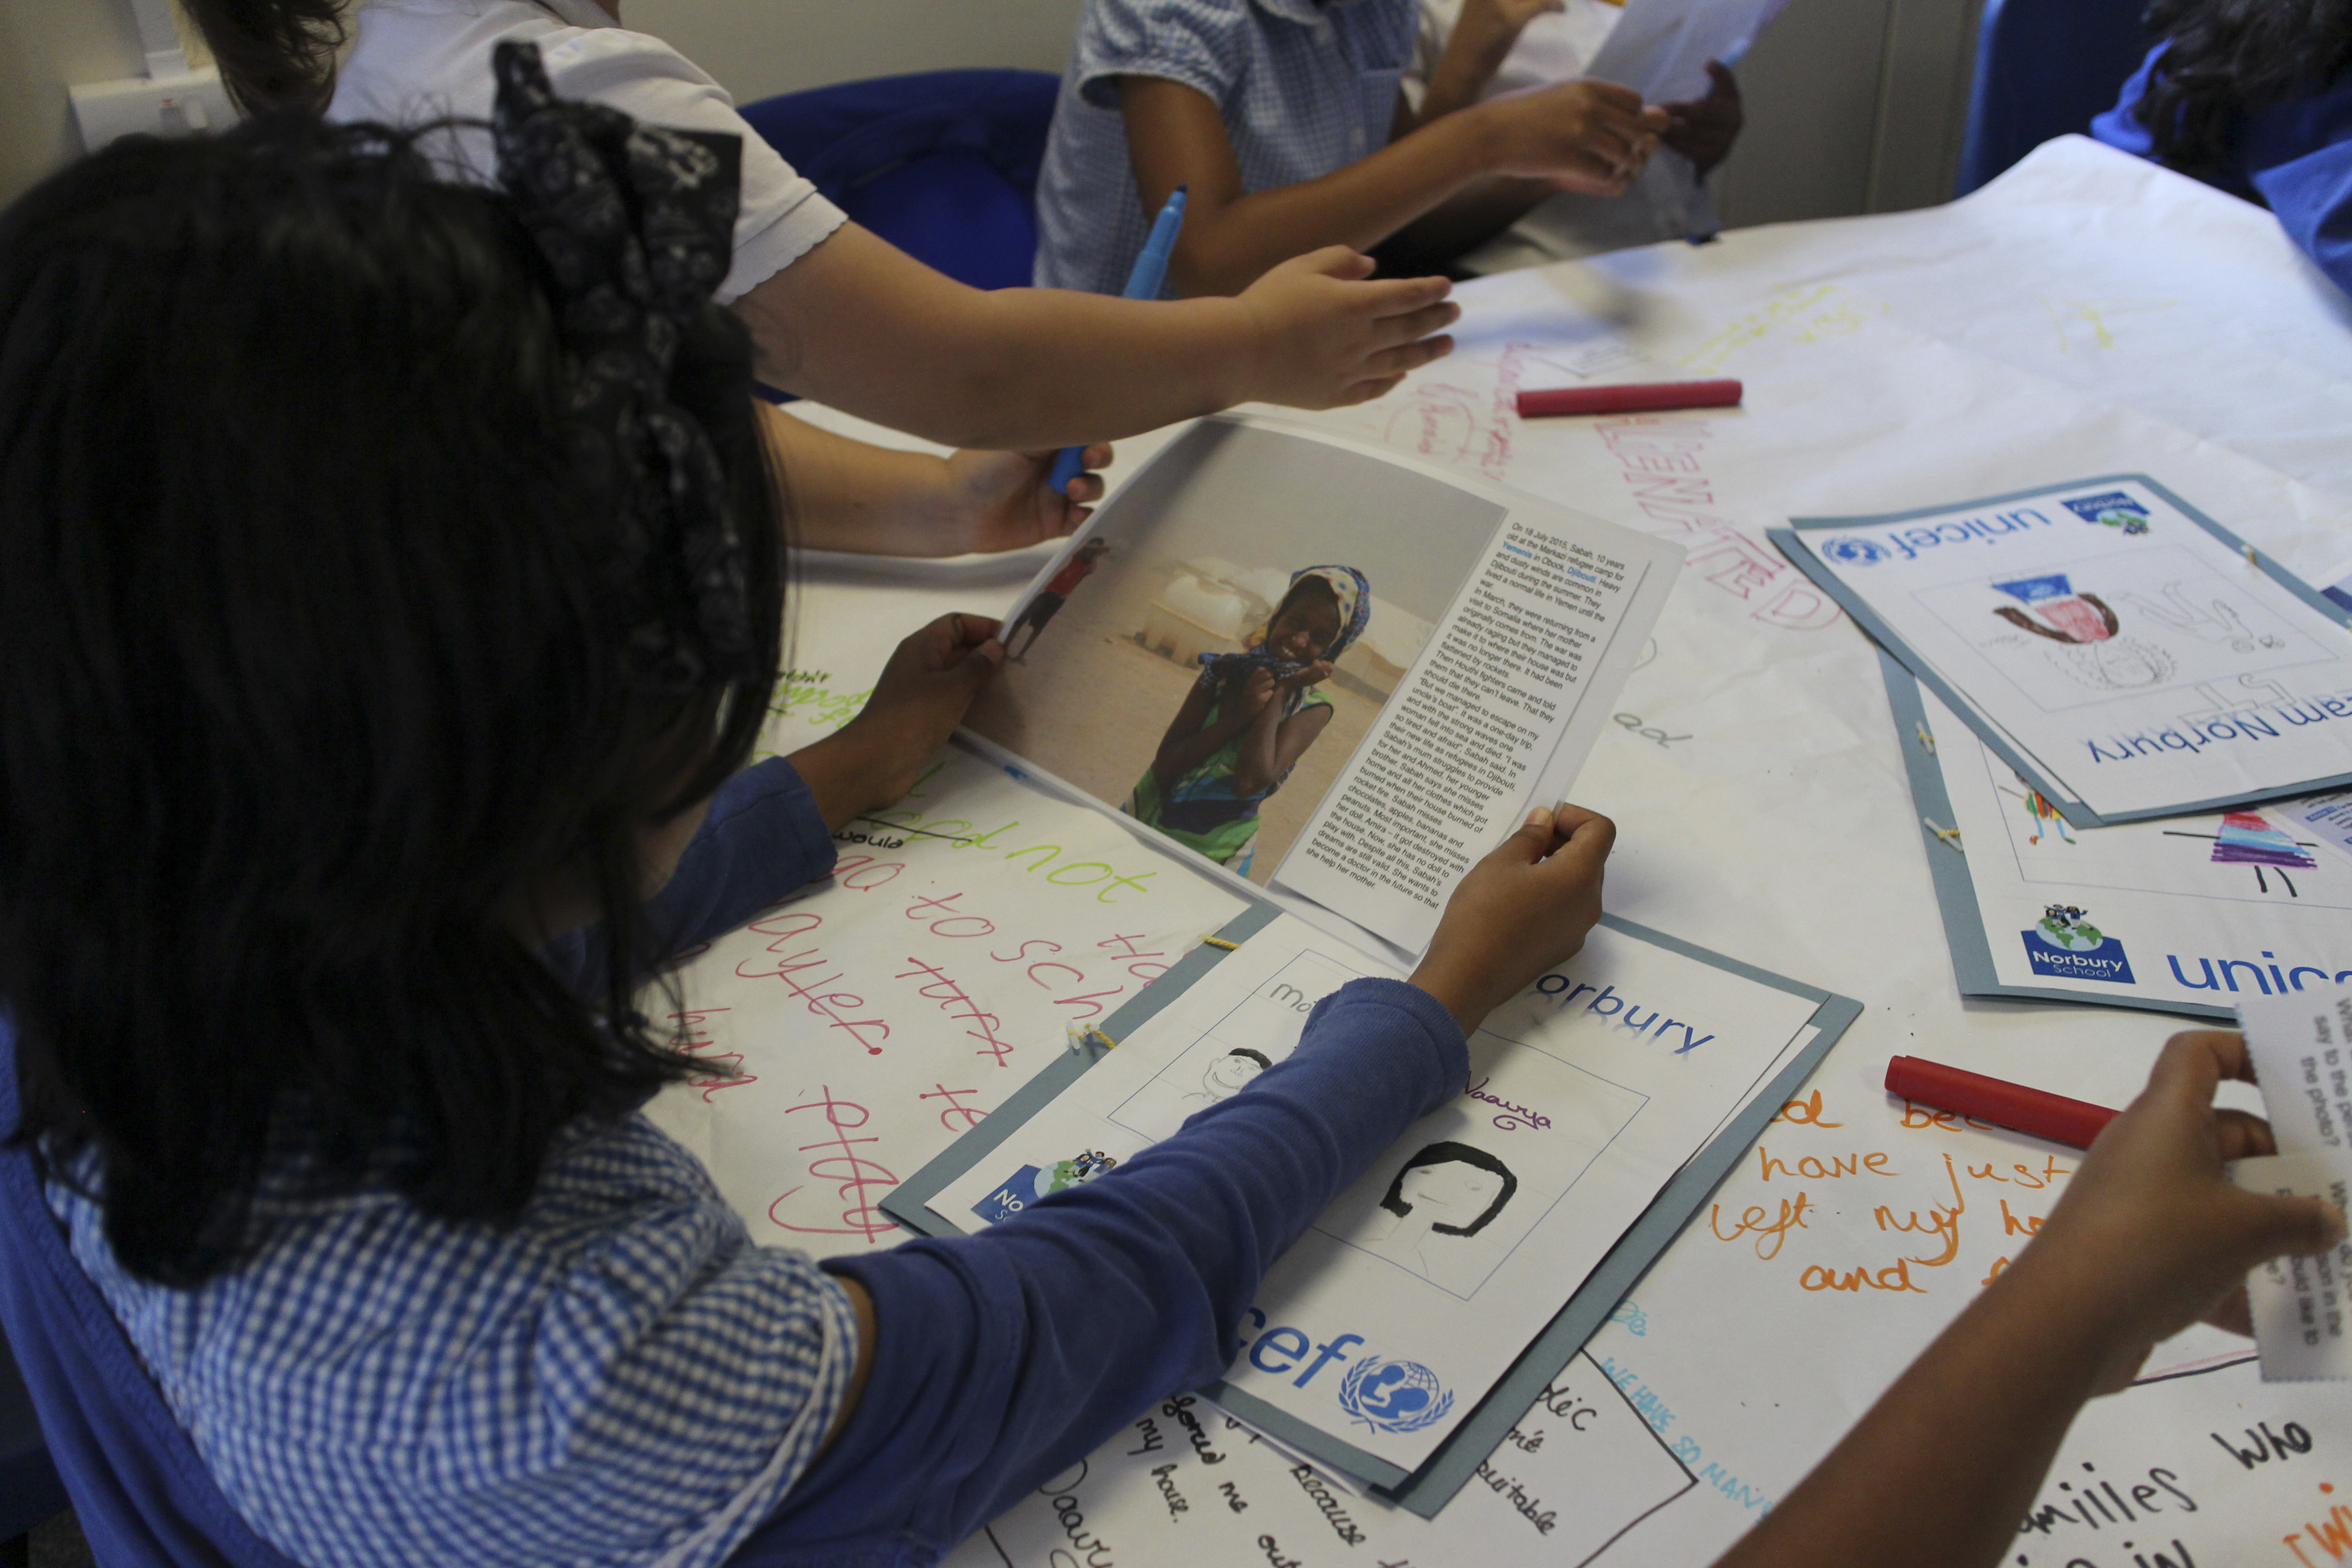 Primary school children, including those with refugee backgrounds, read real-life stories about refugees during a classroom lesson about the refugee crisis at Norbury School in Harrow, London, Britain July 15, 2016. Picture taken July 15, 2016.  Thomson Reuters Foundation/Lin Taylor - RTSIU5X